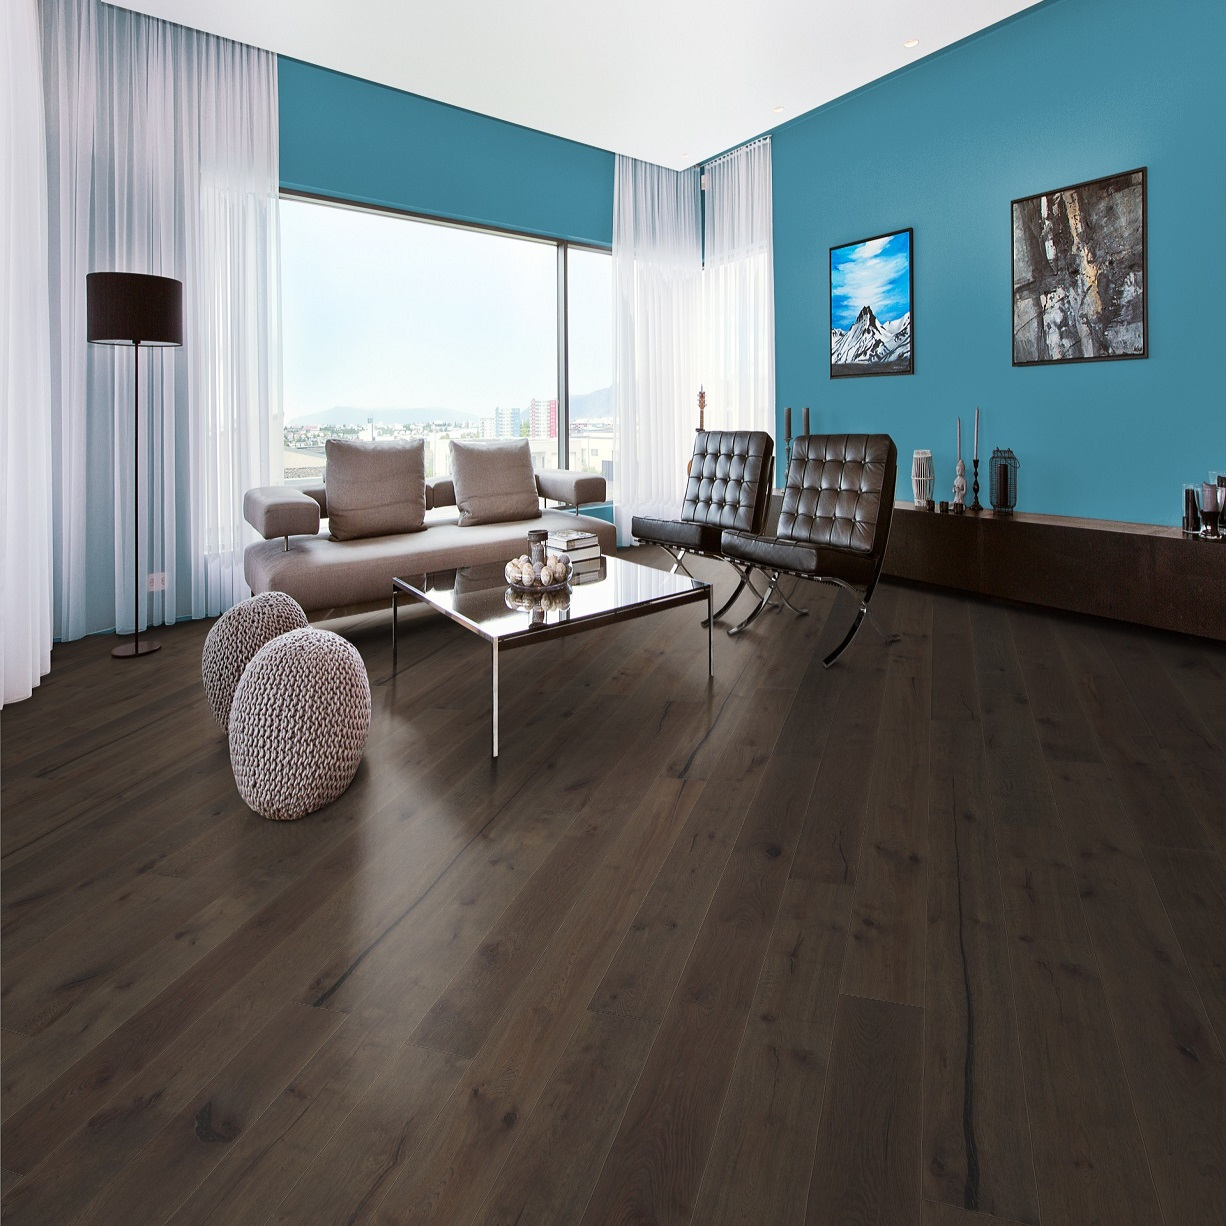 Kahrs Founders Engineered Hardwood Flooring Collection Is An Expressive Tribute To The Original And Inventive Members That Built Grew Innovative